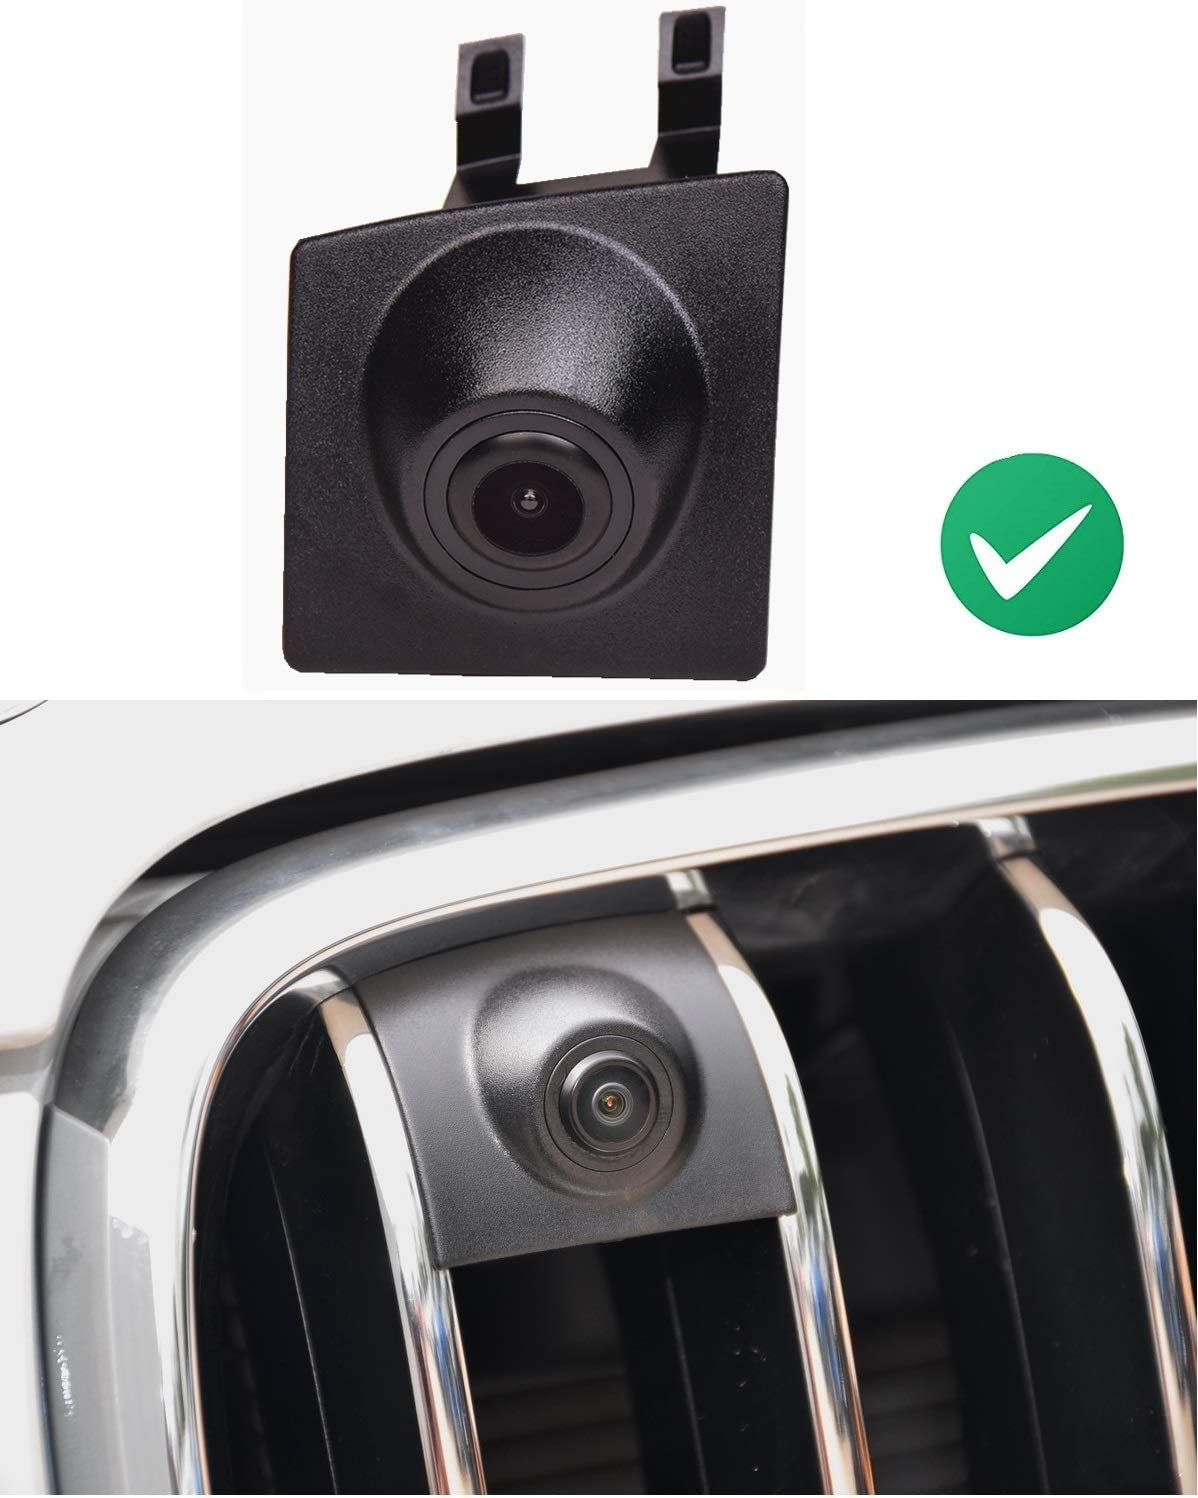 for Front Grille View Vehicle Logo Camera for BMW 3 5 7series X1 X3 Vehicle-Specific car Front View Logo Embedded Backup Camera Parking System with CCD Waterproof IP67 Middle